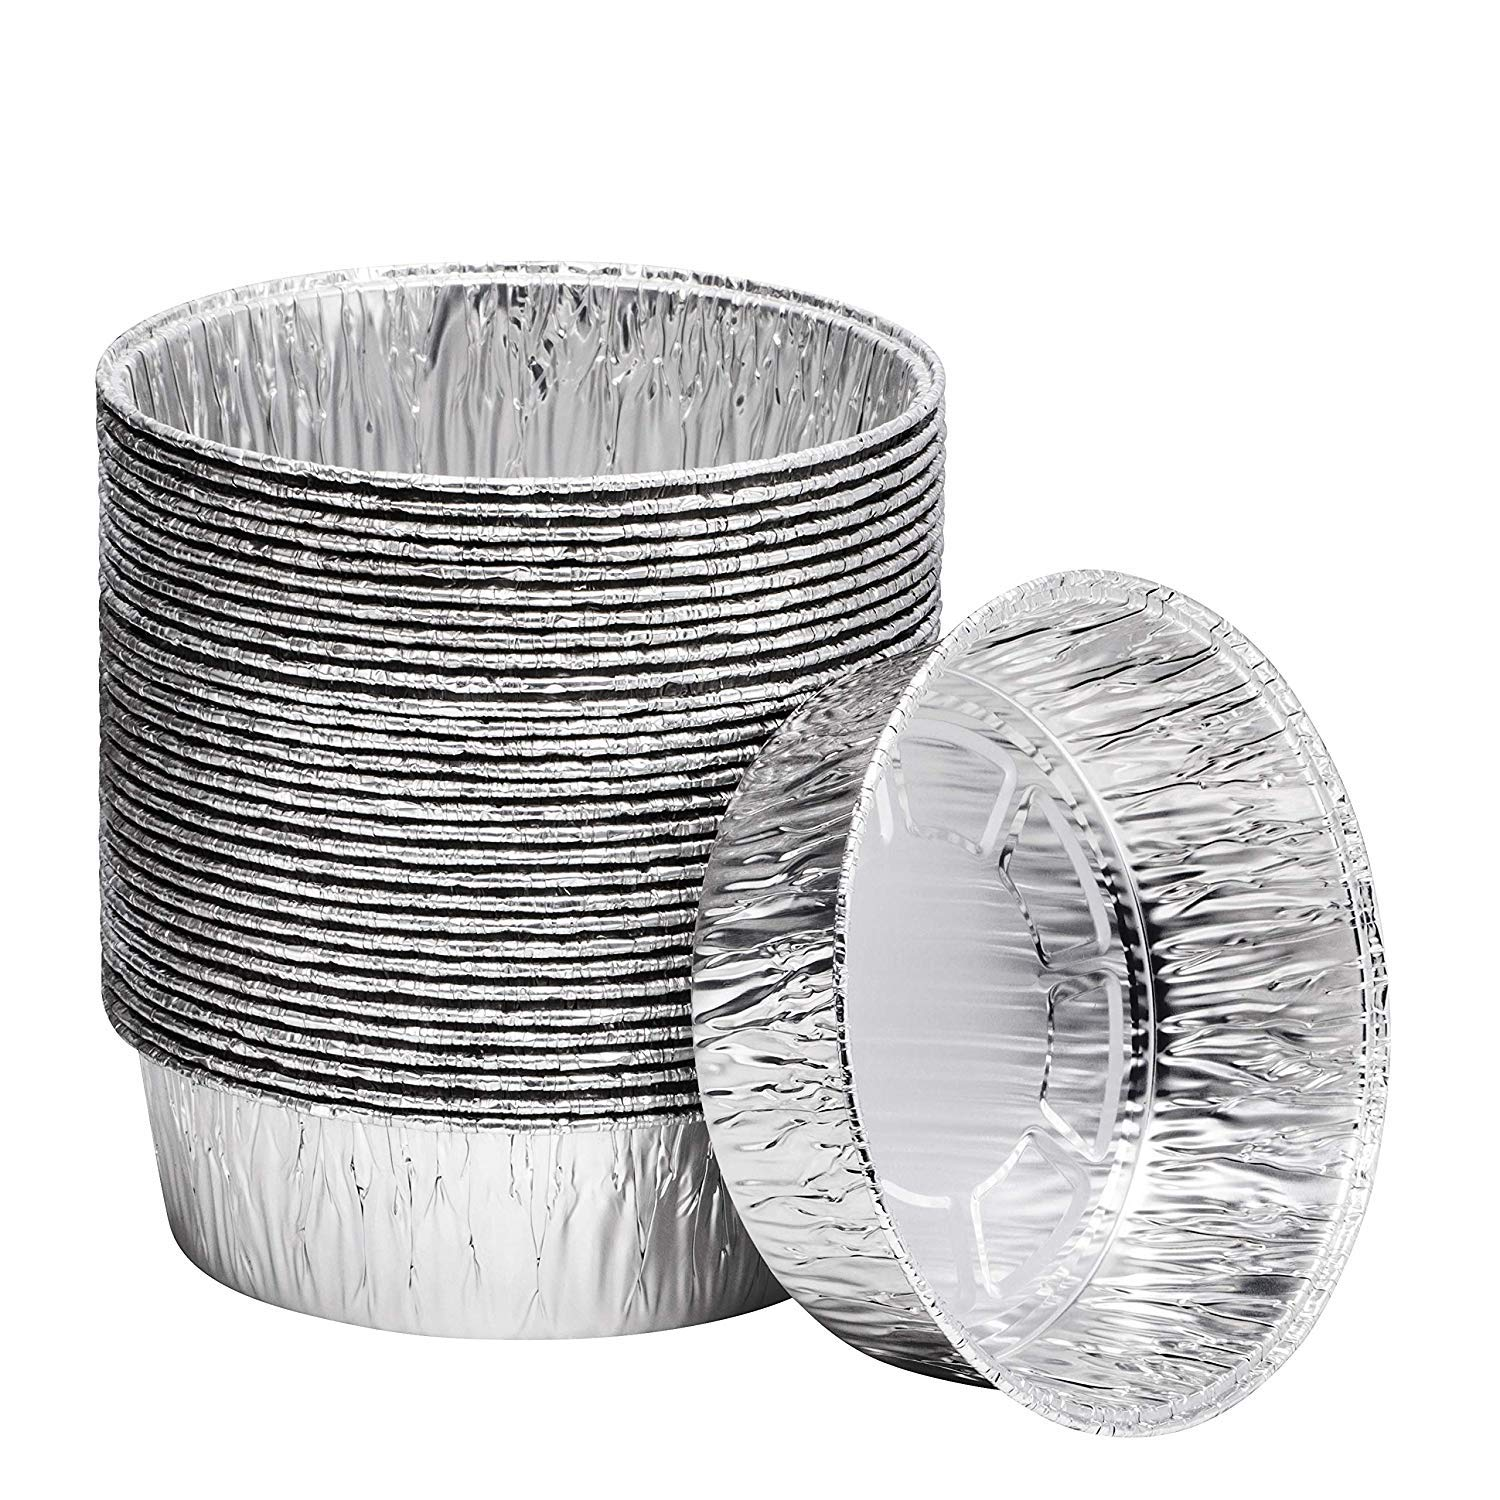 8 Inch Disposable Round Aluminum Pans - Cake Pan and Extra Deep Aluminum Foil Pans for Baking and Storage (10 Count)